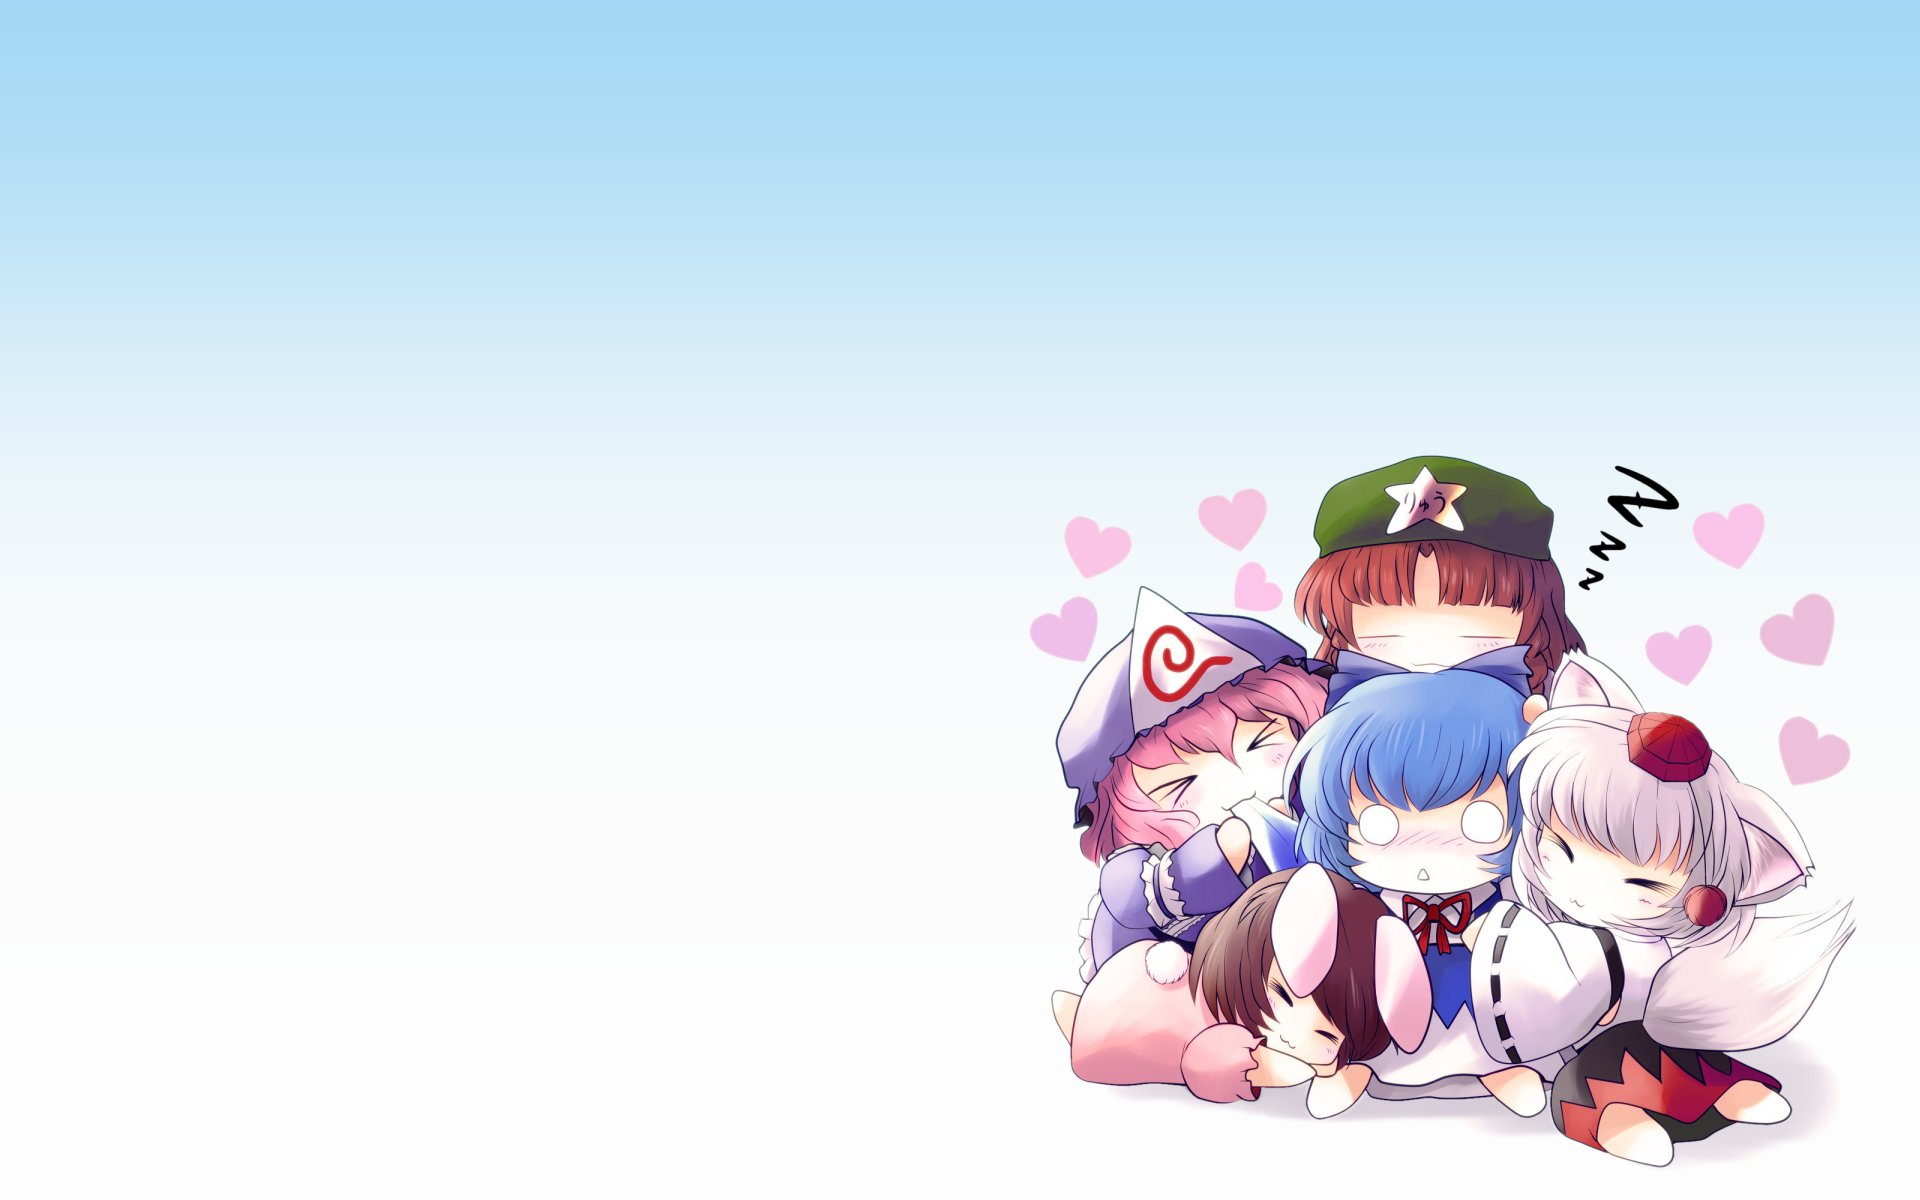 Collection of Chibi Wallpapers on HDWallpapers